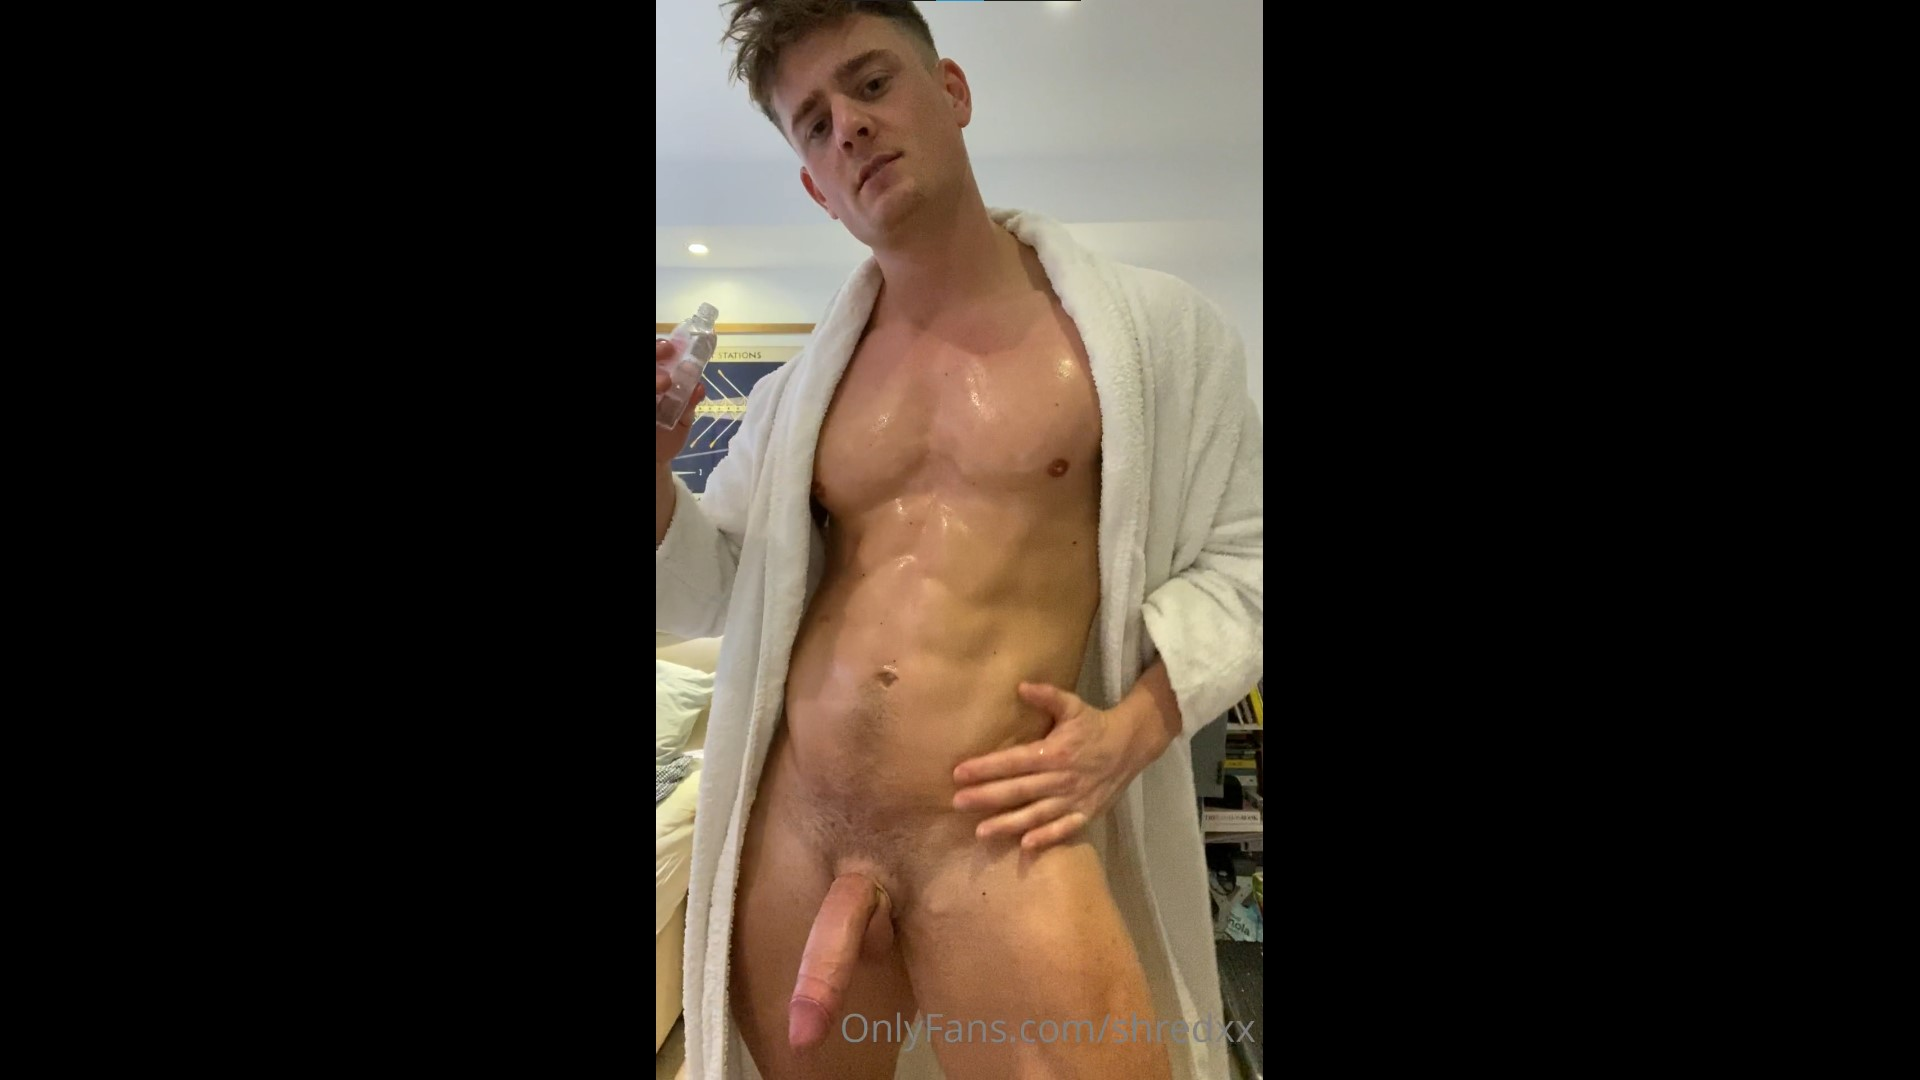 Talking dirty while rubbing oil over my body and cock - Shredxx